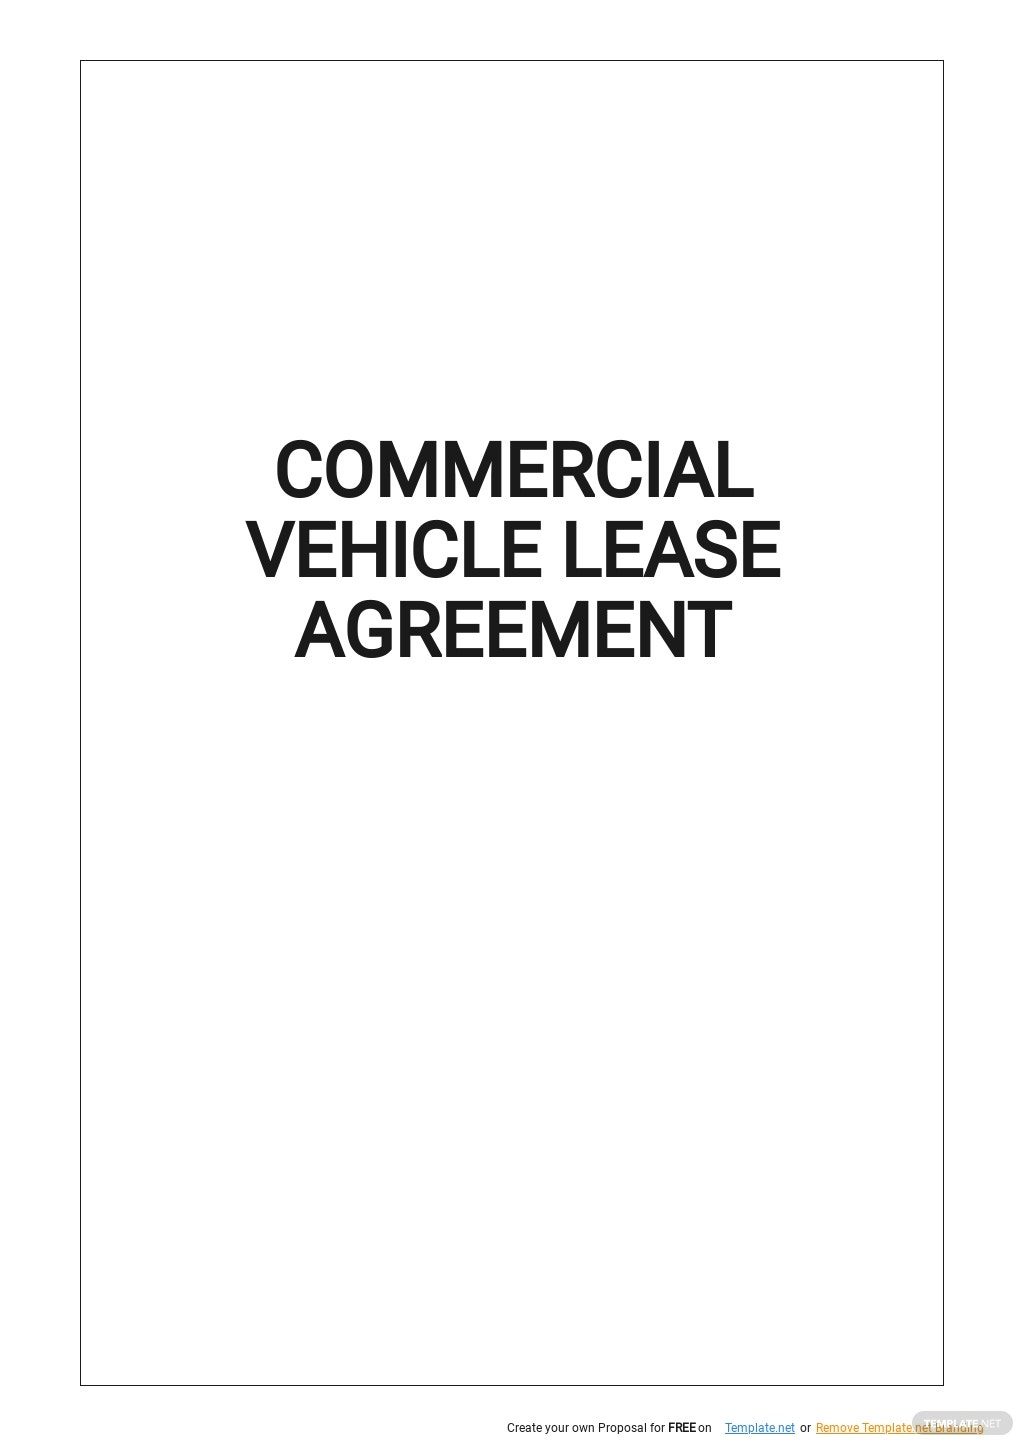 Commercial Vehicle Lease Agreement Template.jpe